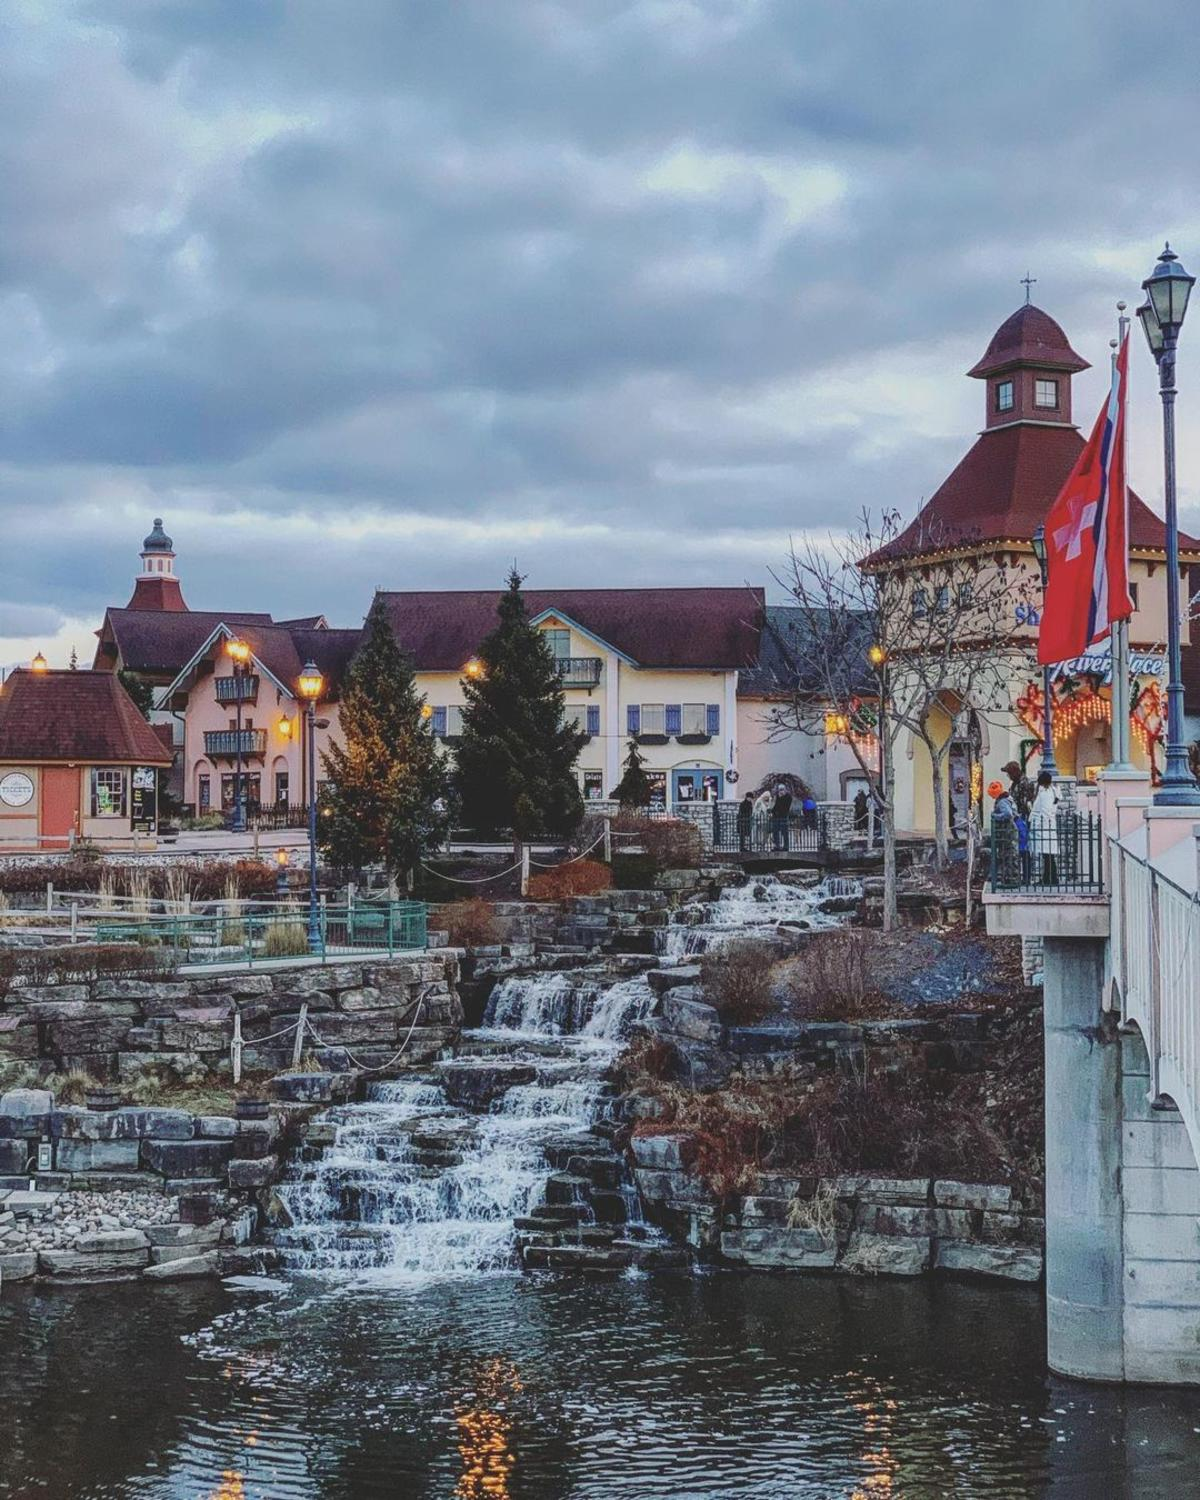 Gorgeous views of the iconic Frankenmuth River Place Shops waterfalls on a wintry day